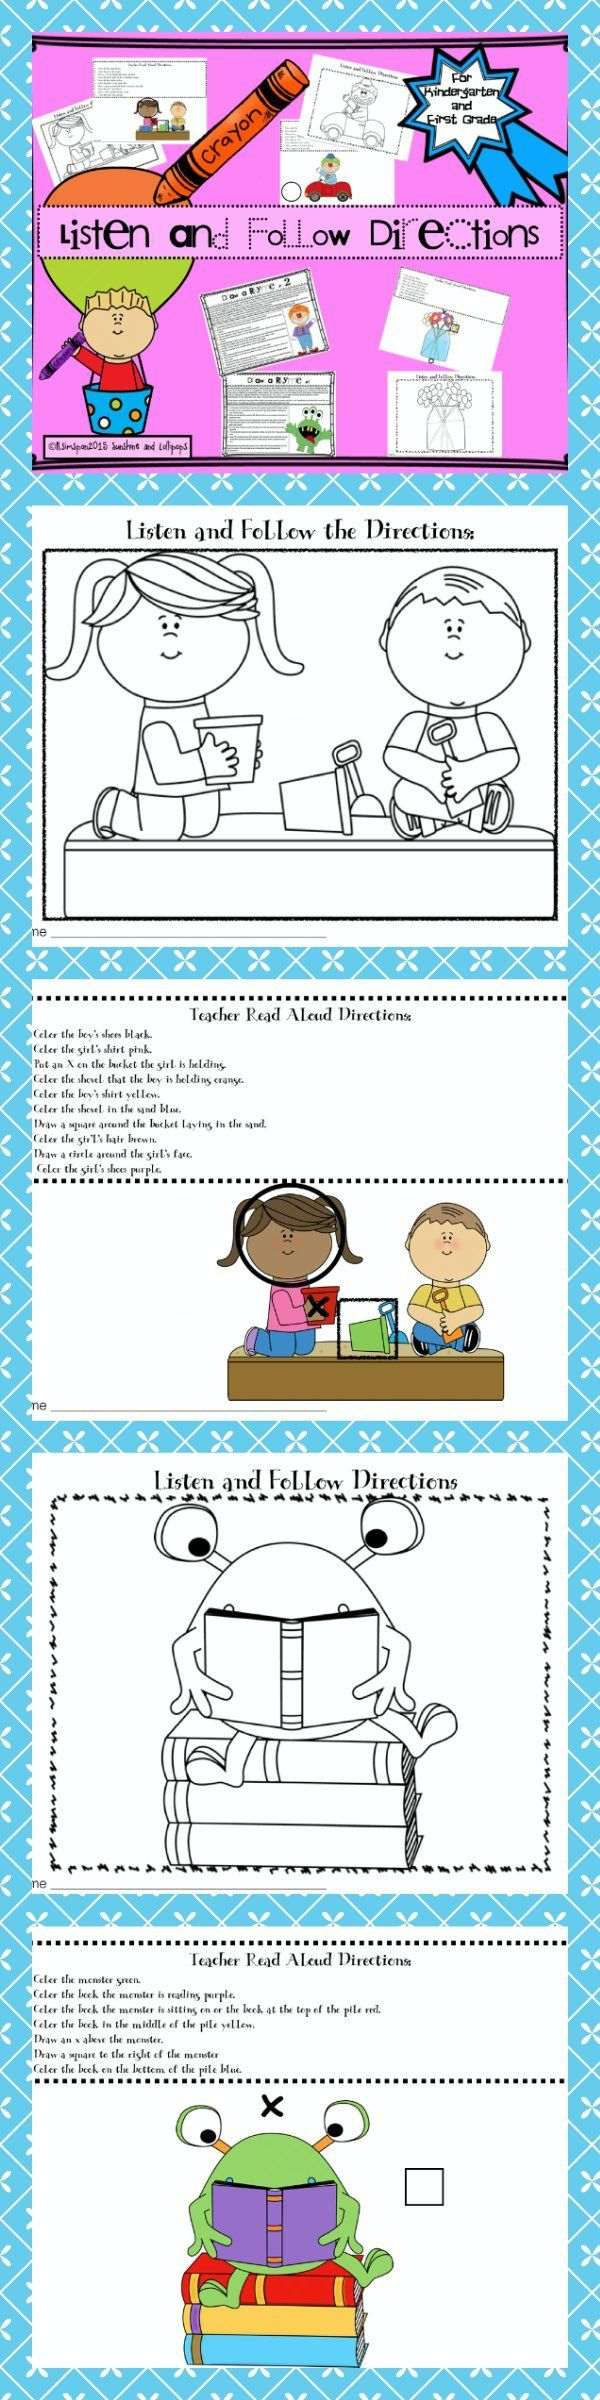 following directions activities for k 1 primary educational resources from sunshine and. Black Bedroom Furniture Sets. Home Design Ideas